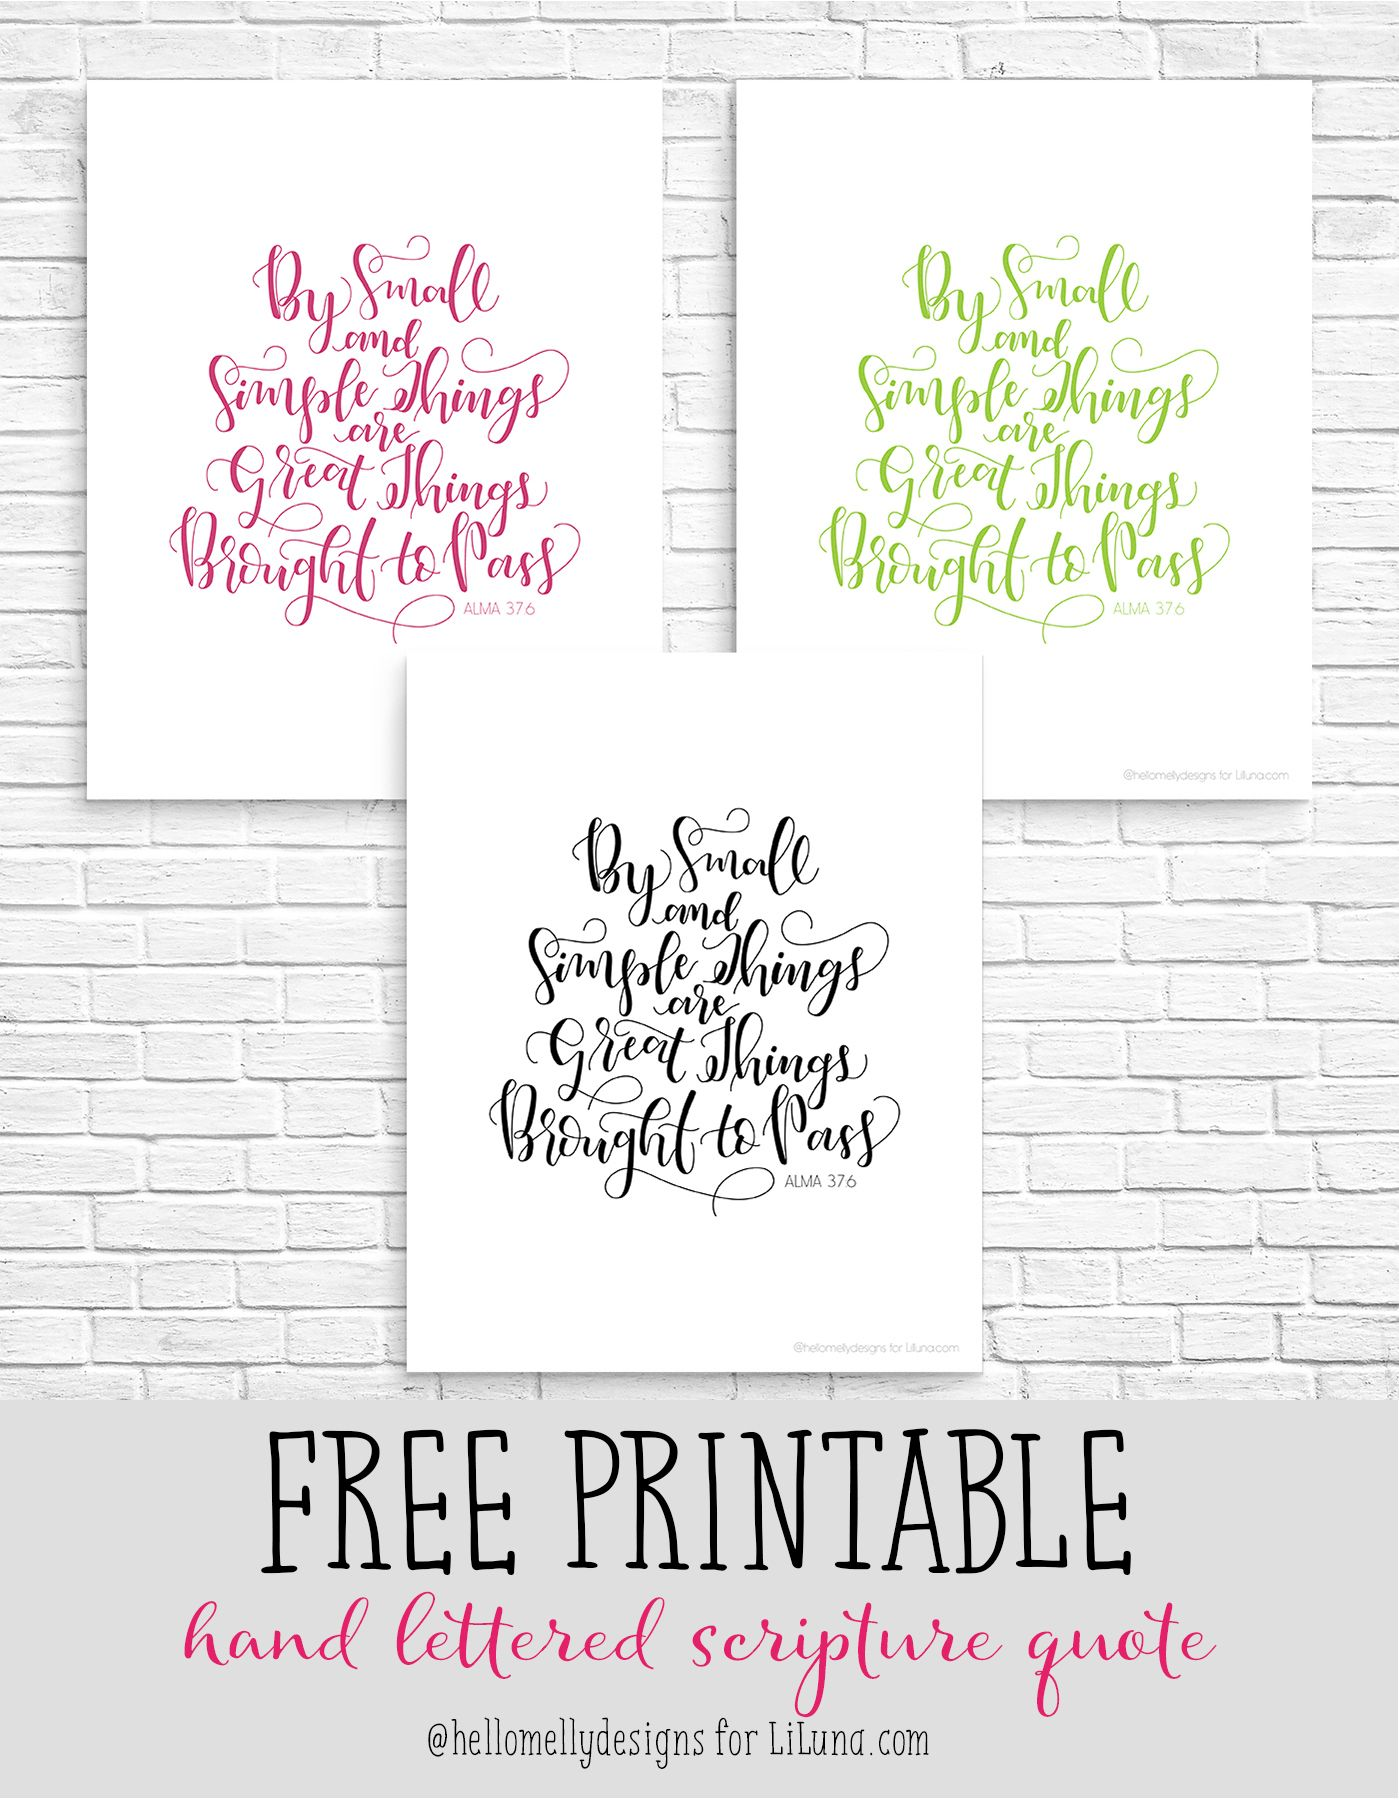 By Small And Simple Things Print The One Stop Diy Shop Yw In